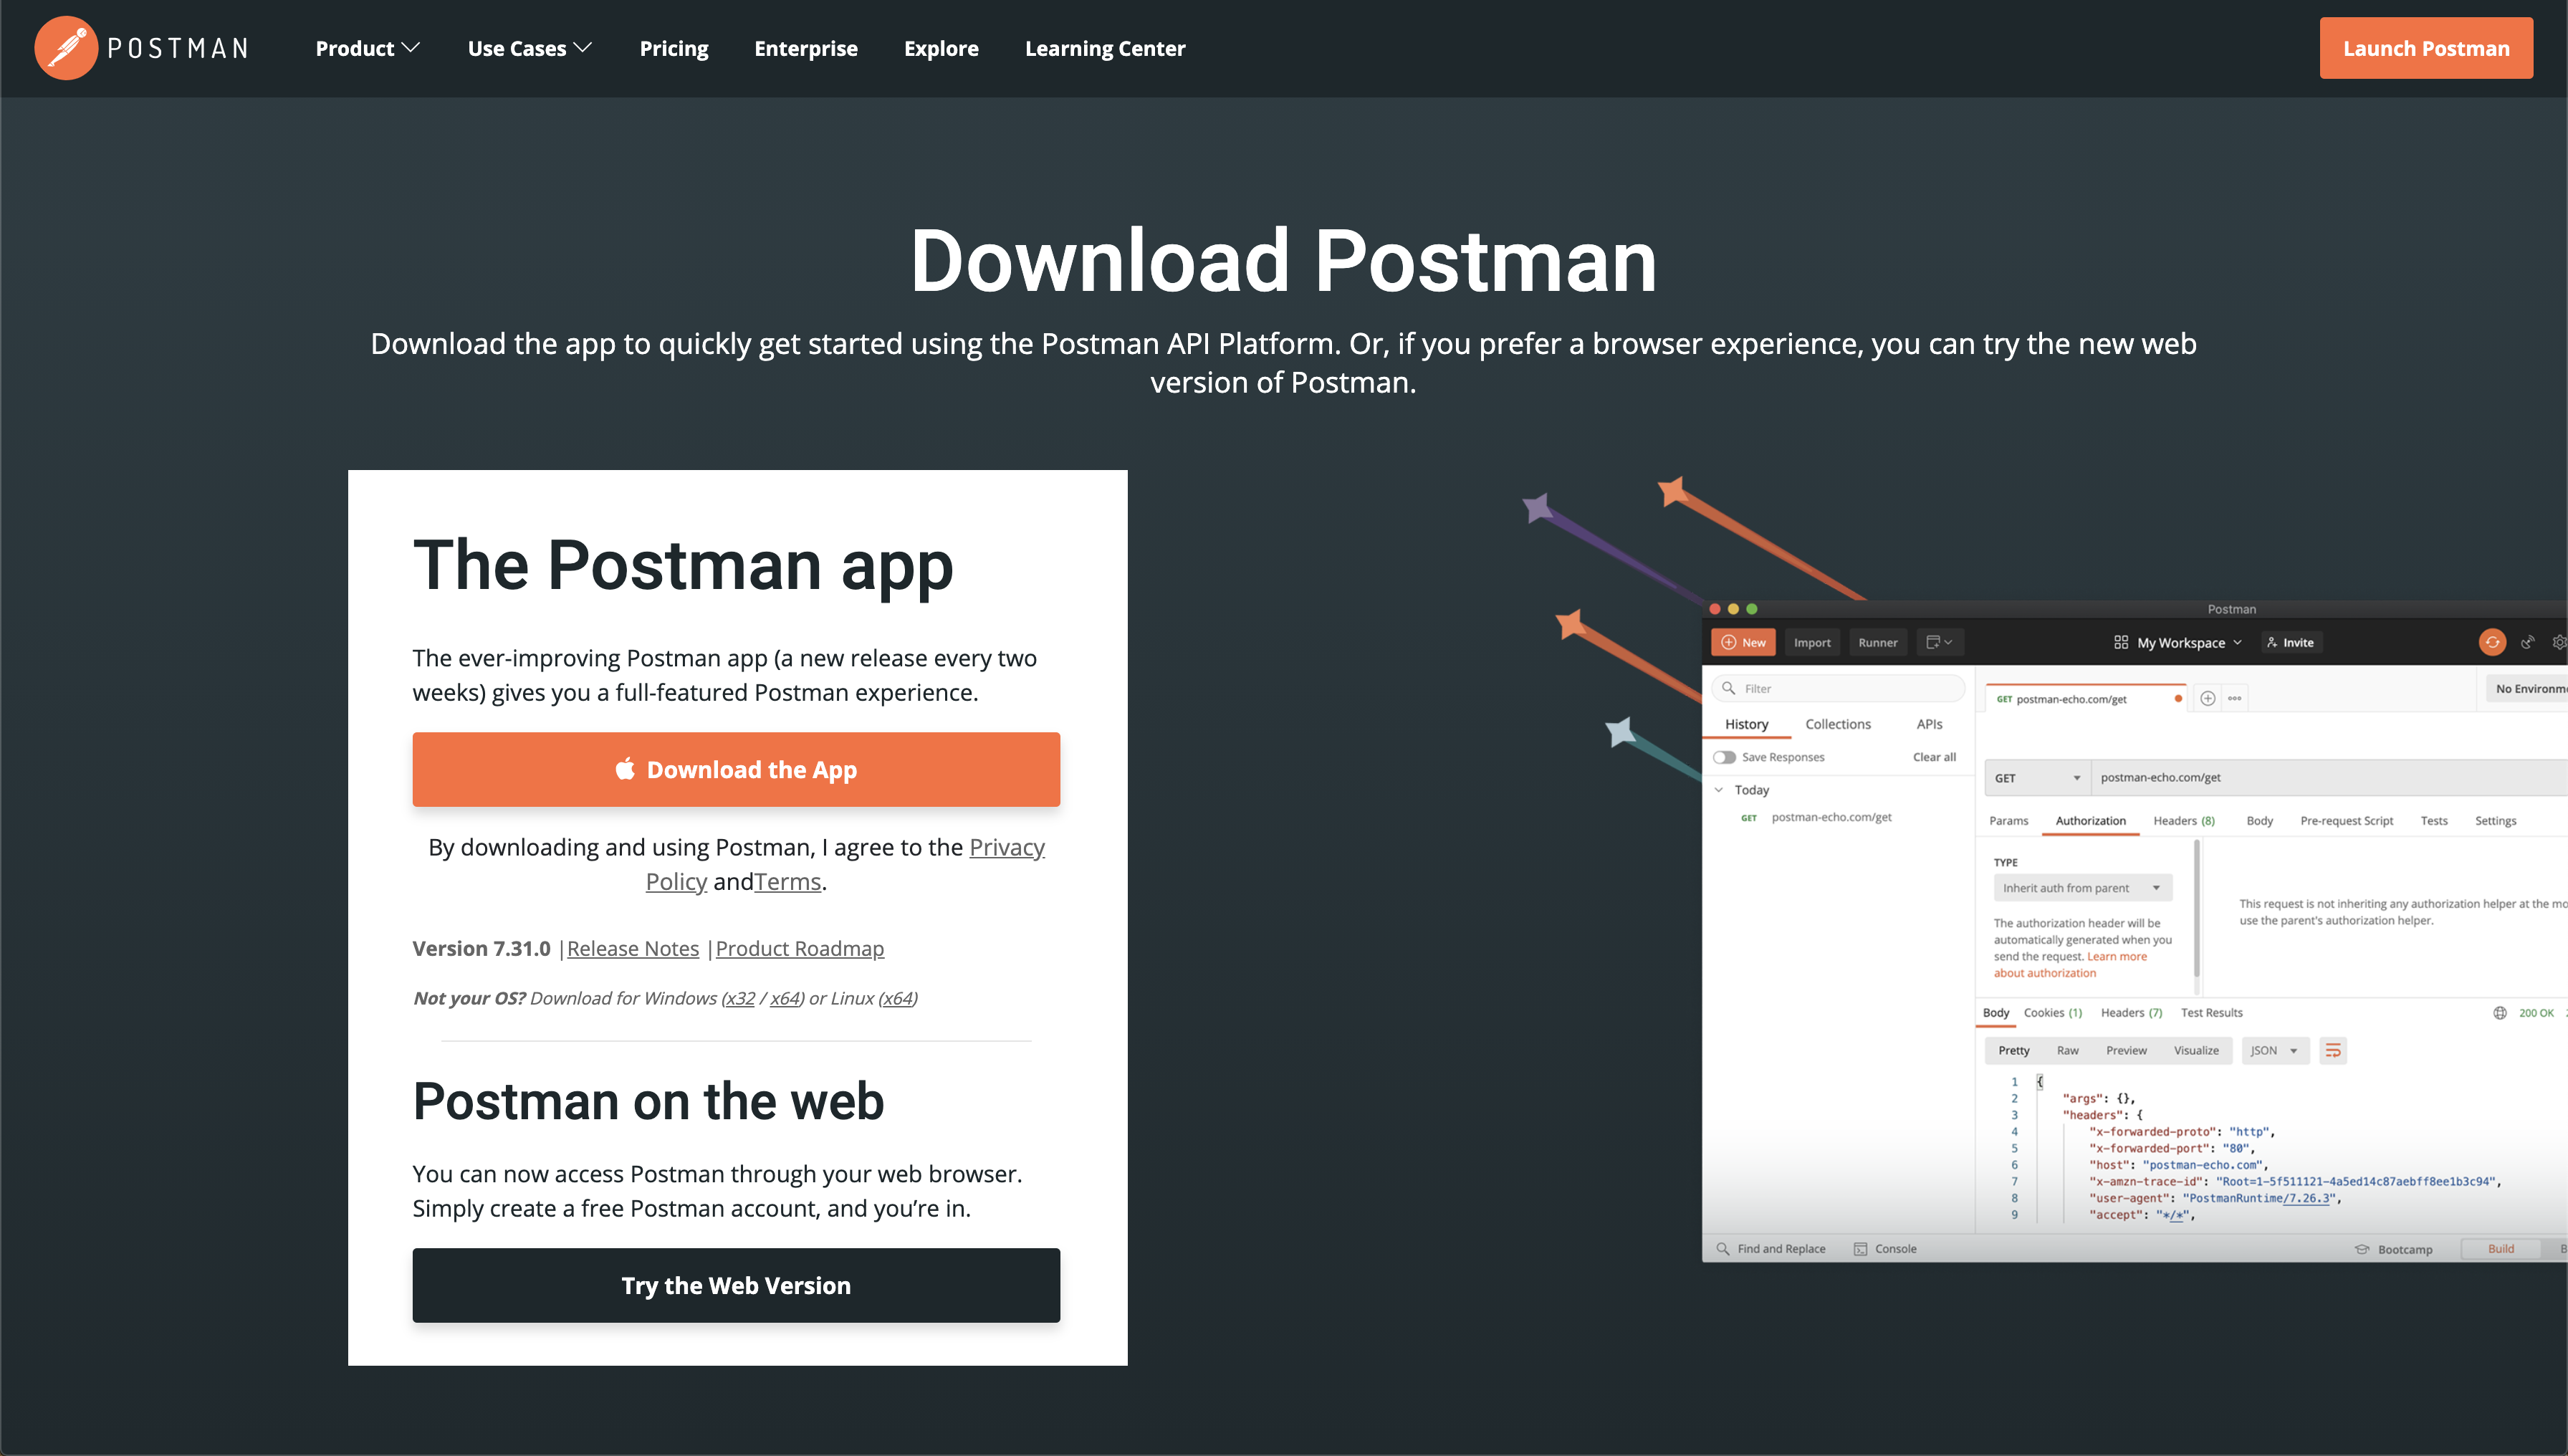 Postman's download page